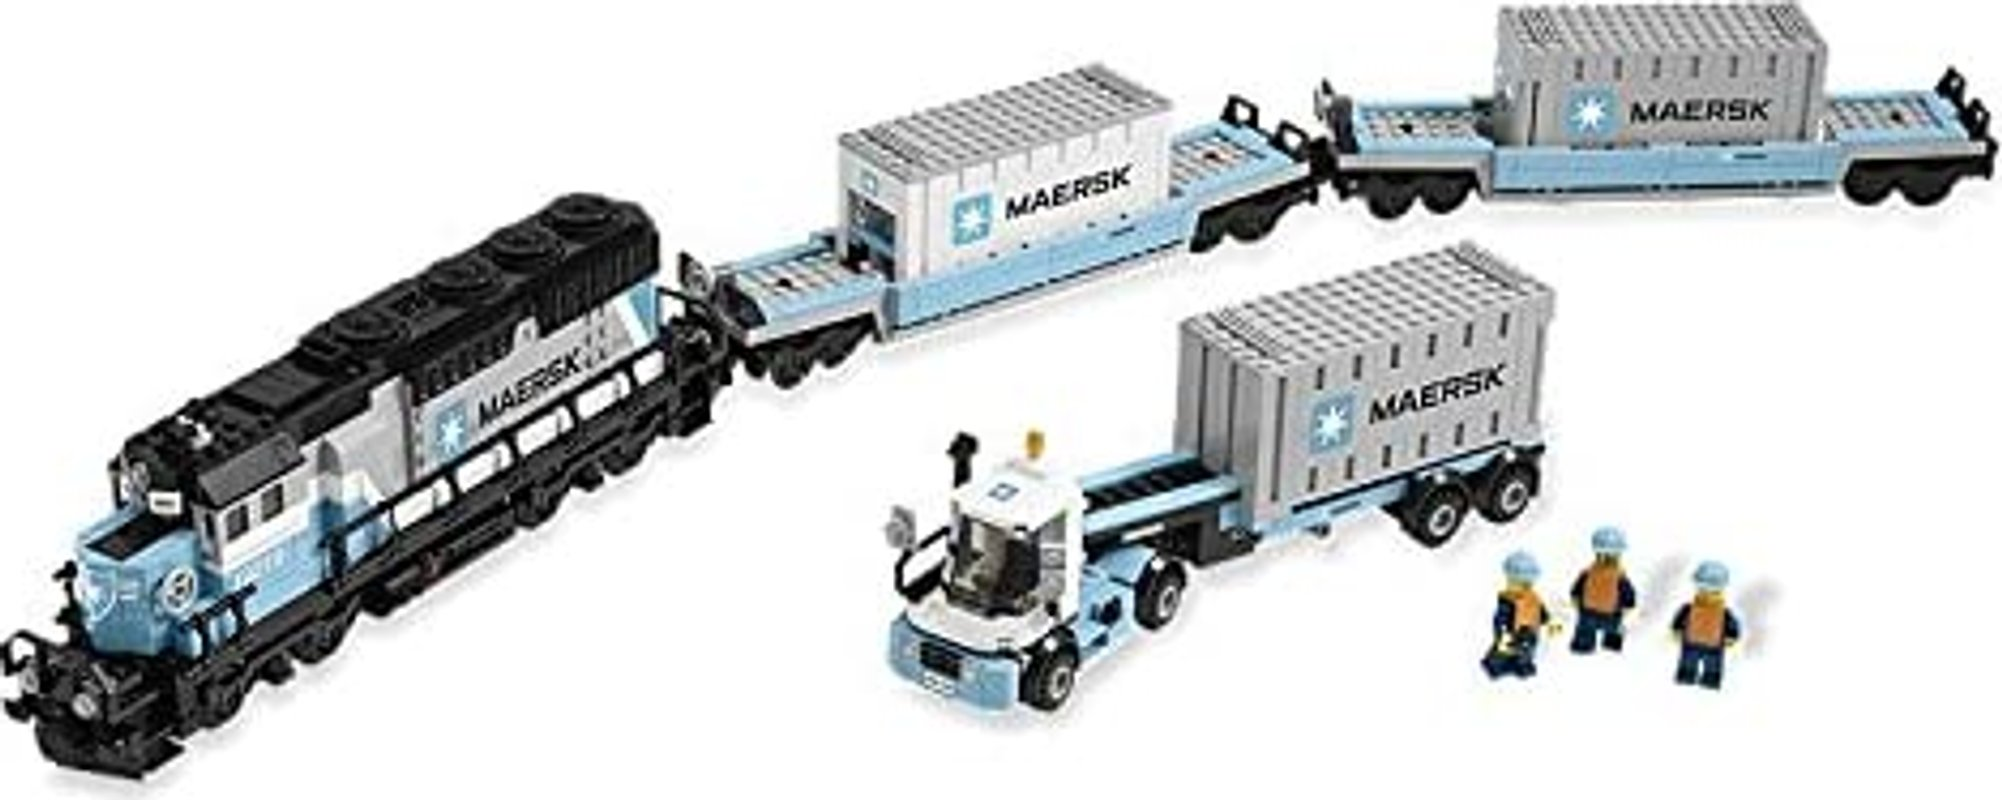 Maersk Train components